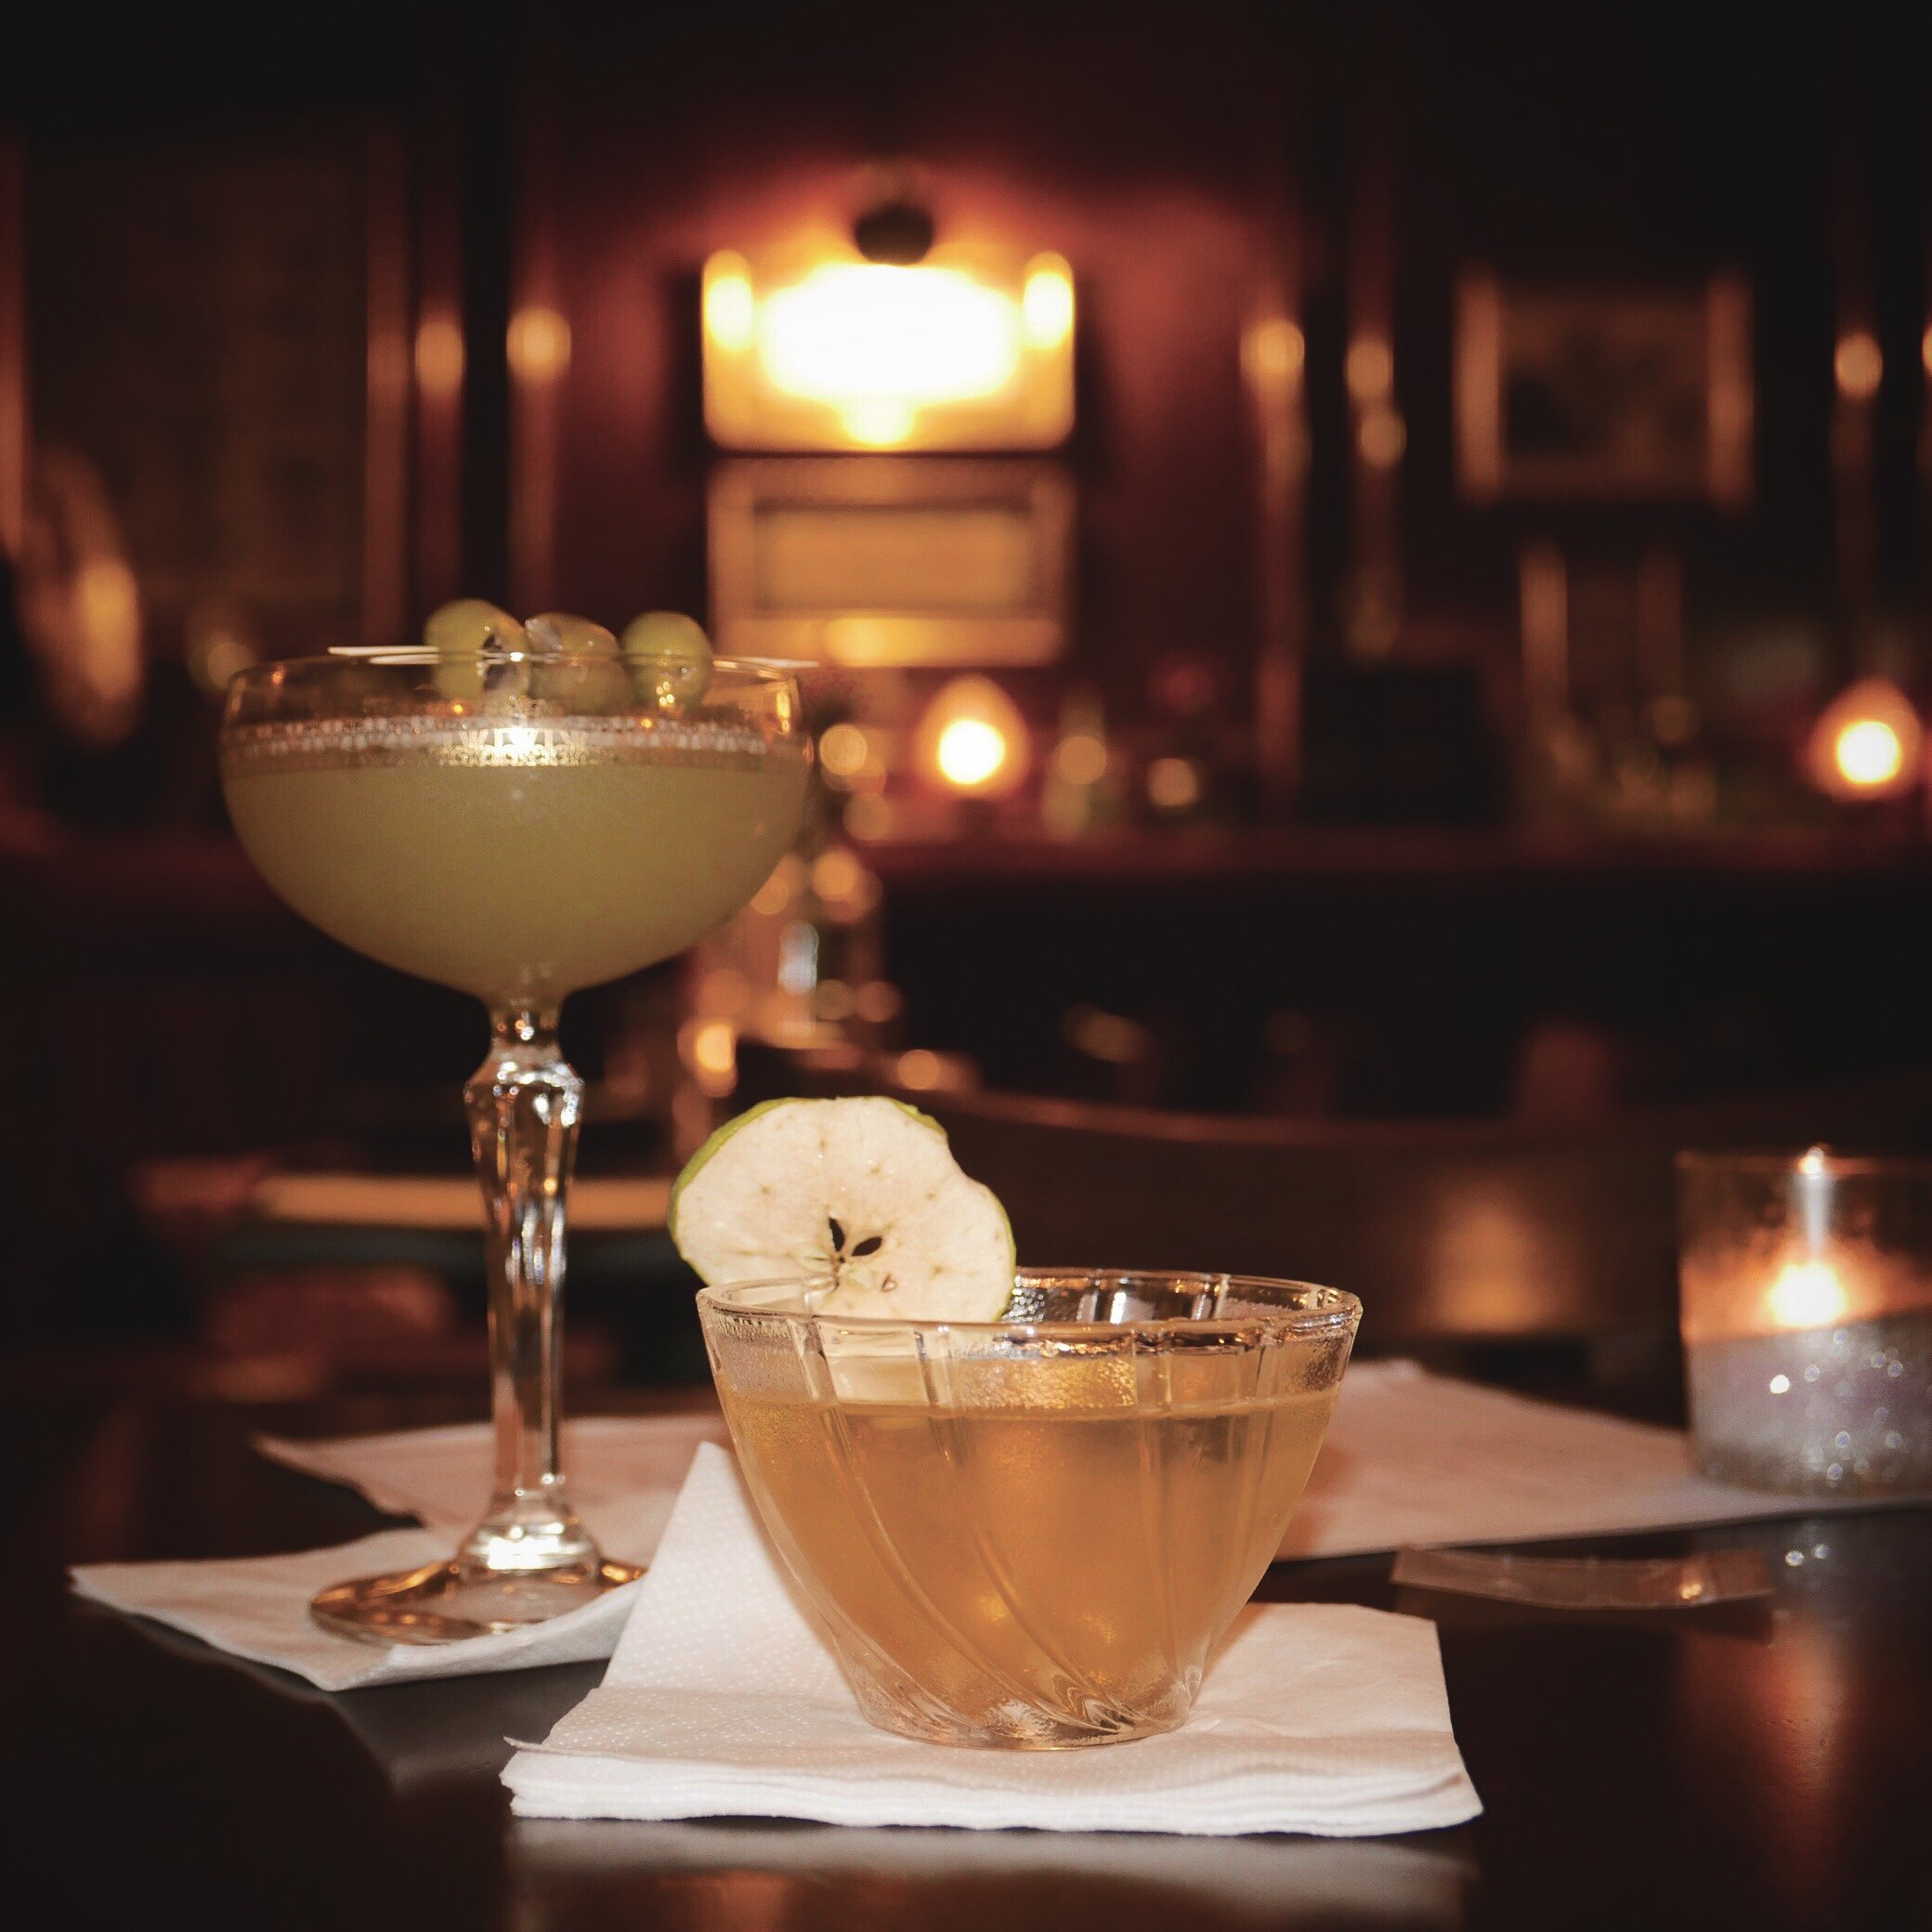 The new autumn cocktail menu at Jekyll and Hyde